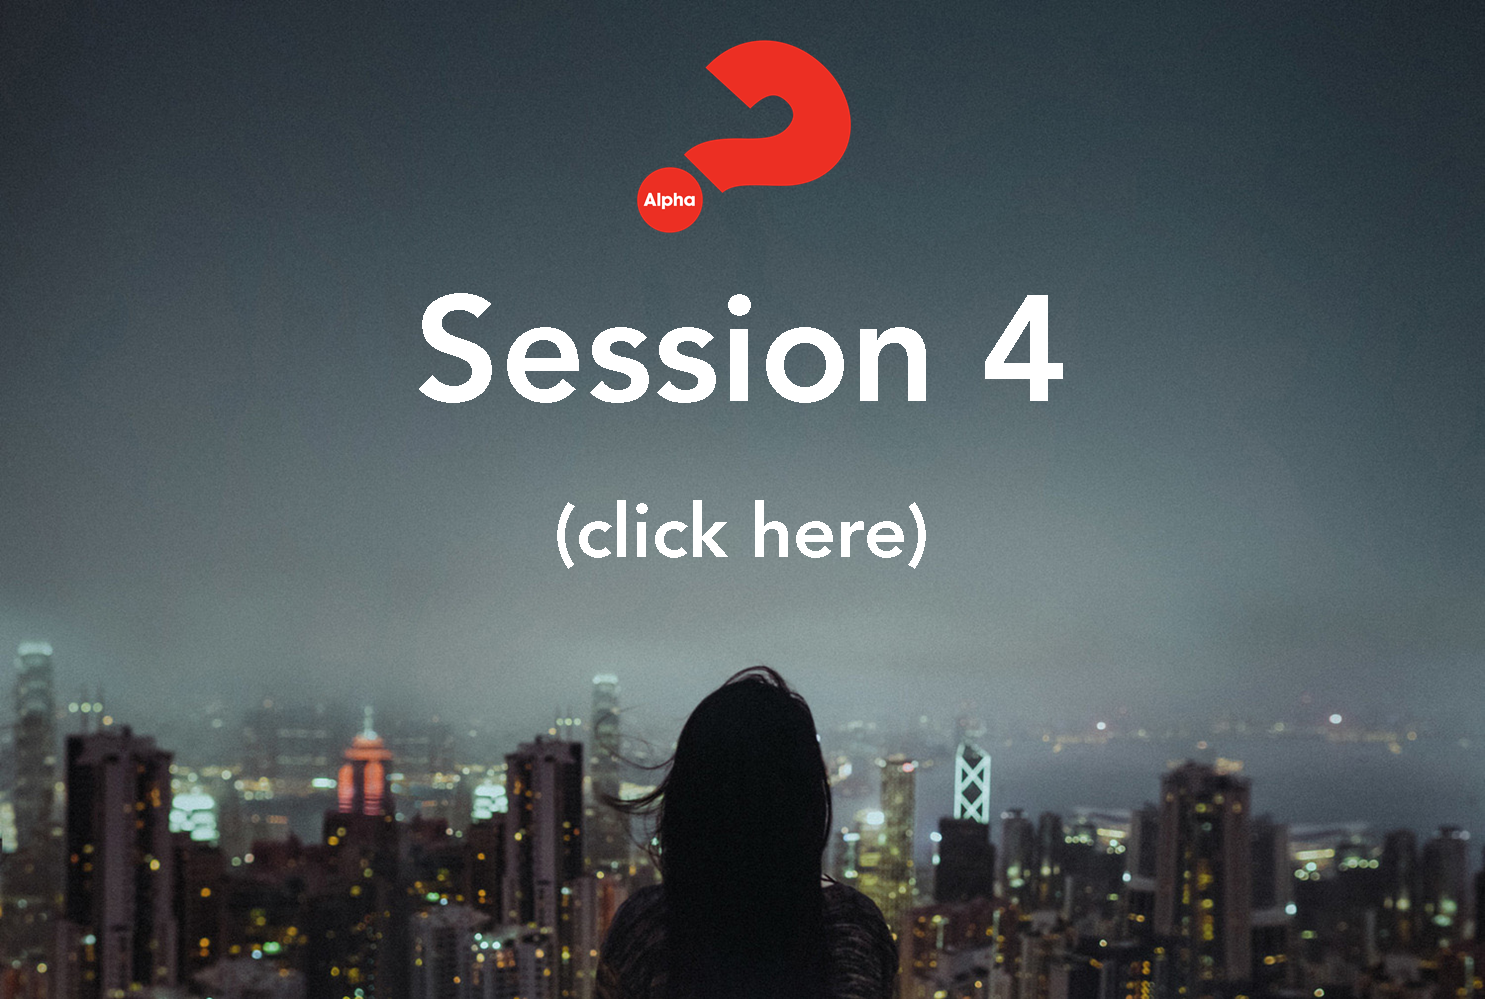 Session 4 WB.png